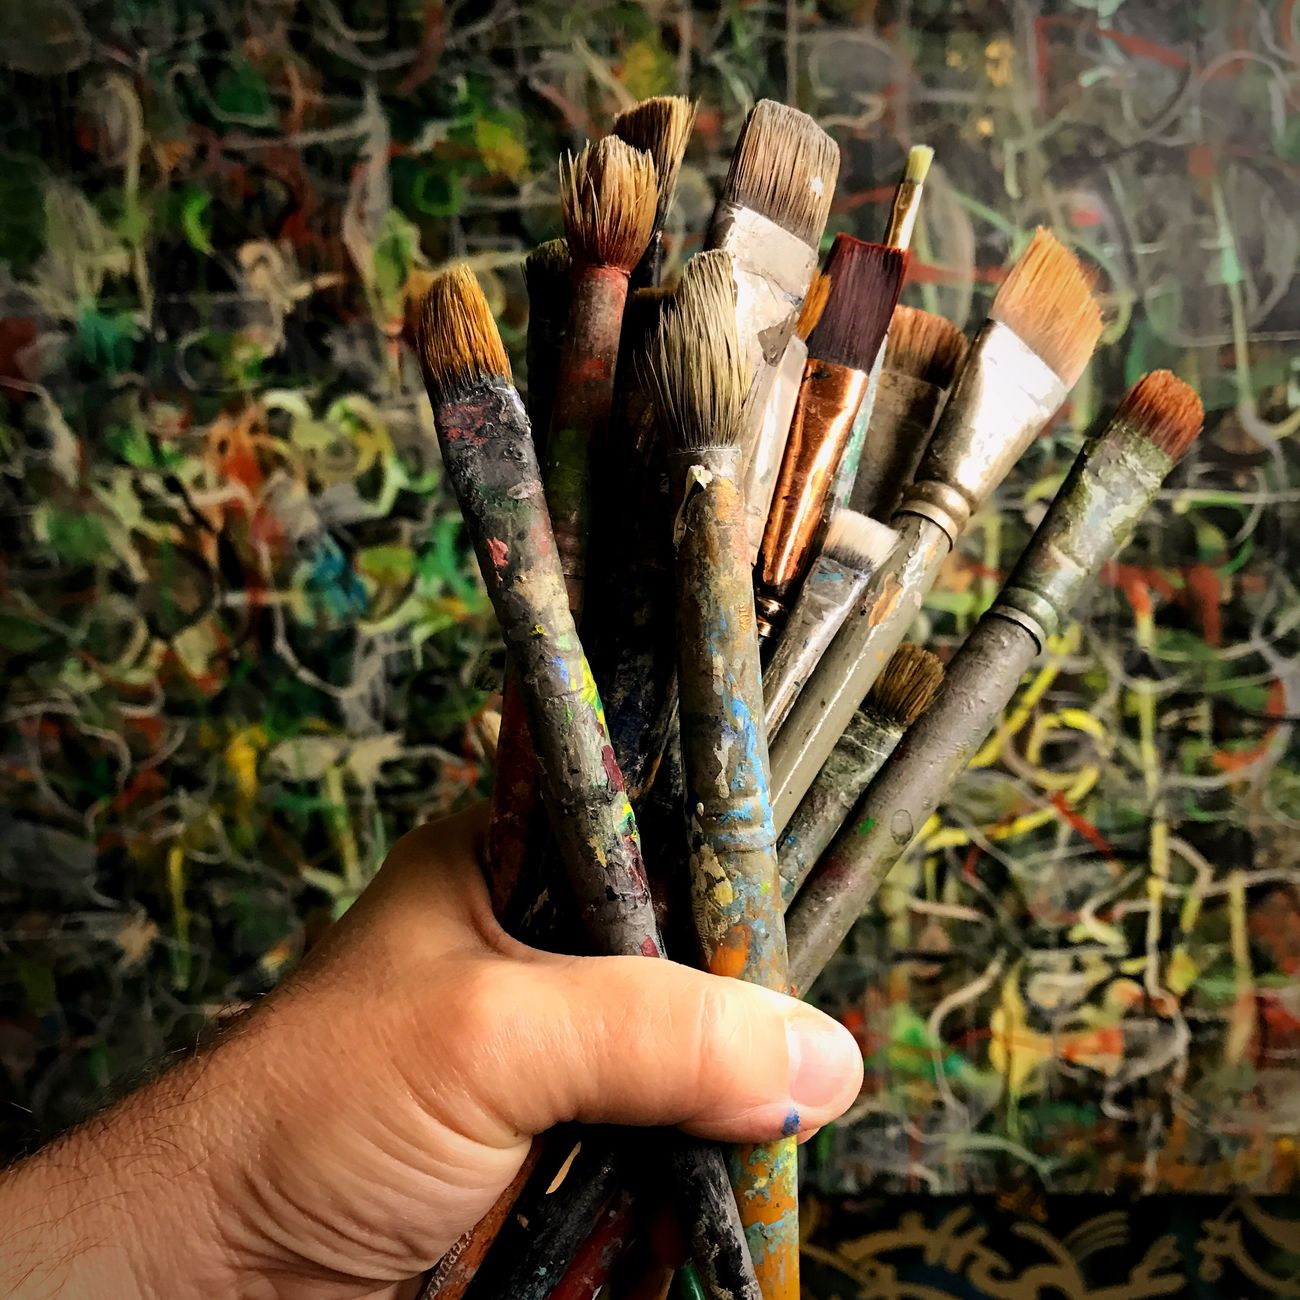 A few of my painting tools Paintbrush Art And Craft Holding One Person Close-up Human Hand Outdoors Day People Artphotography Ross Farrell Art Ross Farrell Design Painting Rossfarrell Artist Multi Colored Art Indoors  Ross Farrell Photography Ross Farrell Photos Me :)  Lifestyles